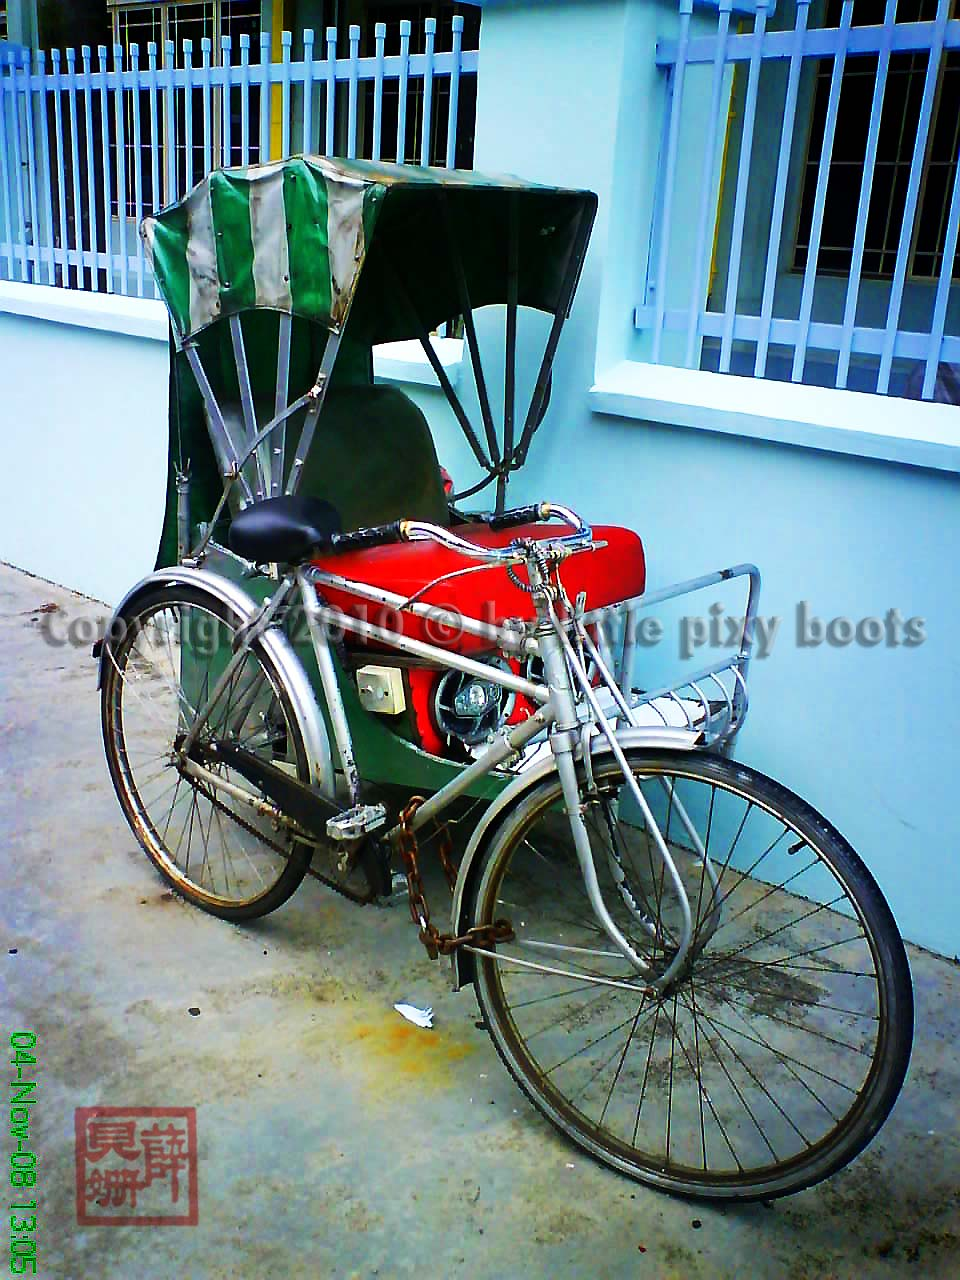 was oogling this gorgeous trishaw every morning on my way to work ...